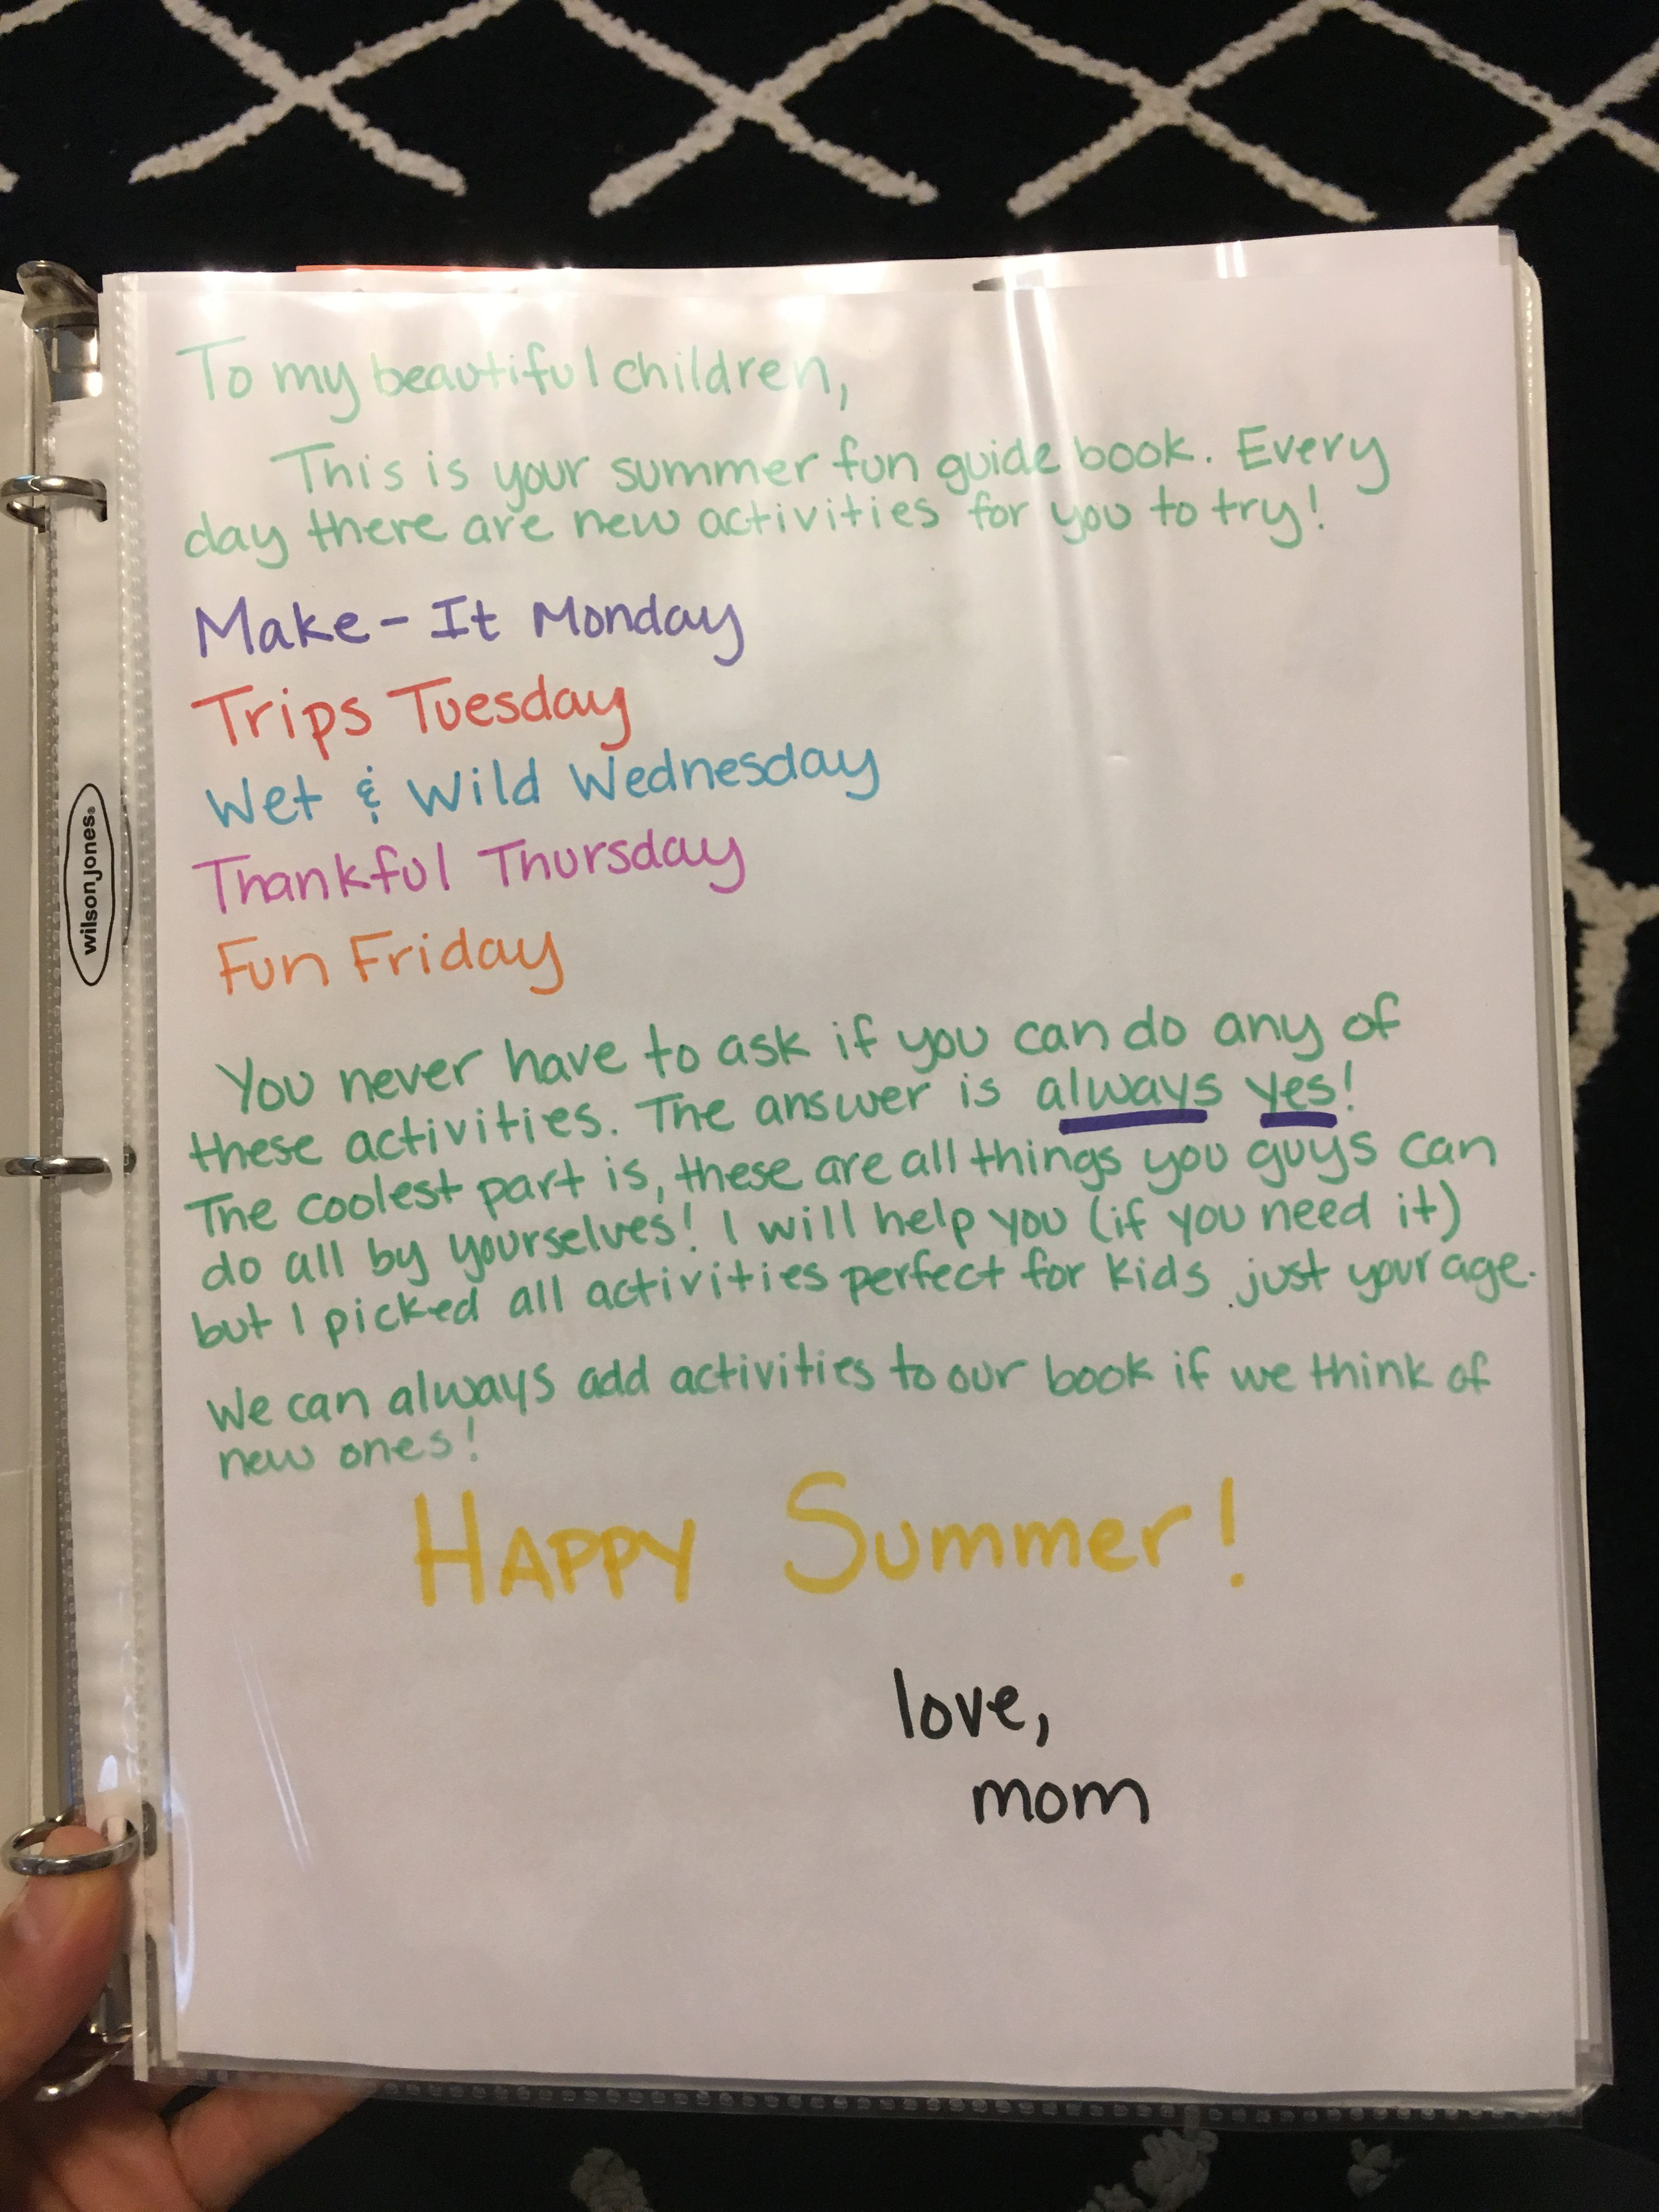 How to make a summer fun guide